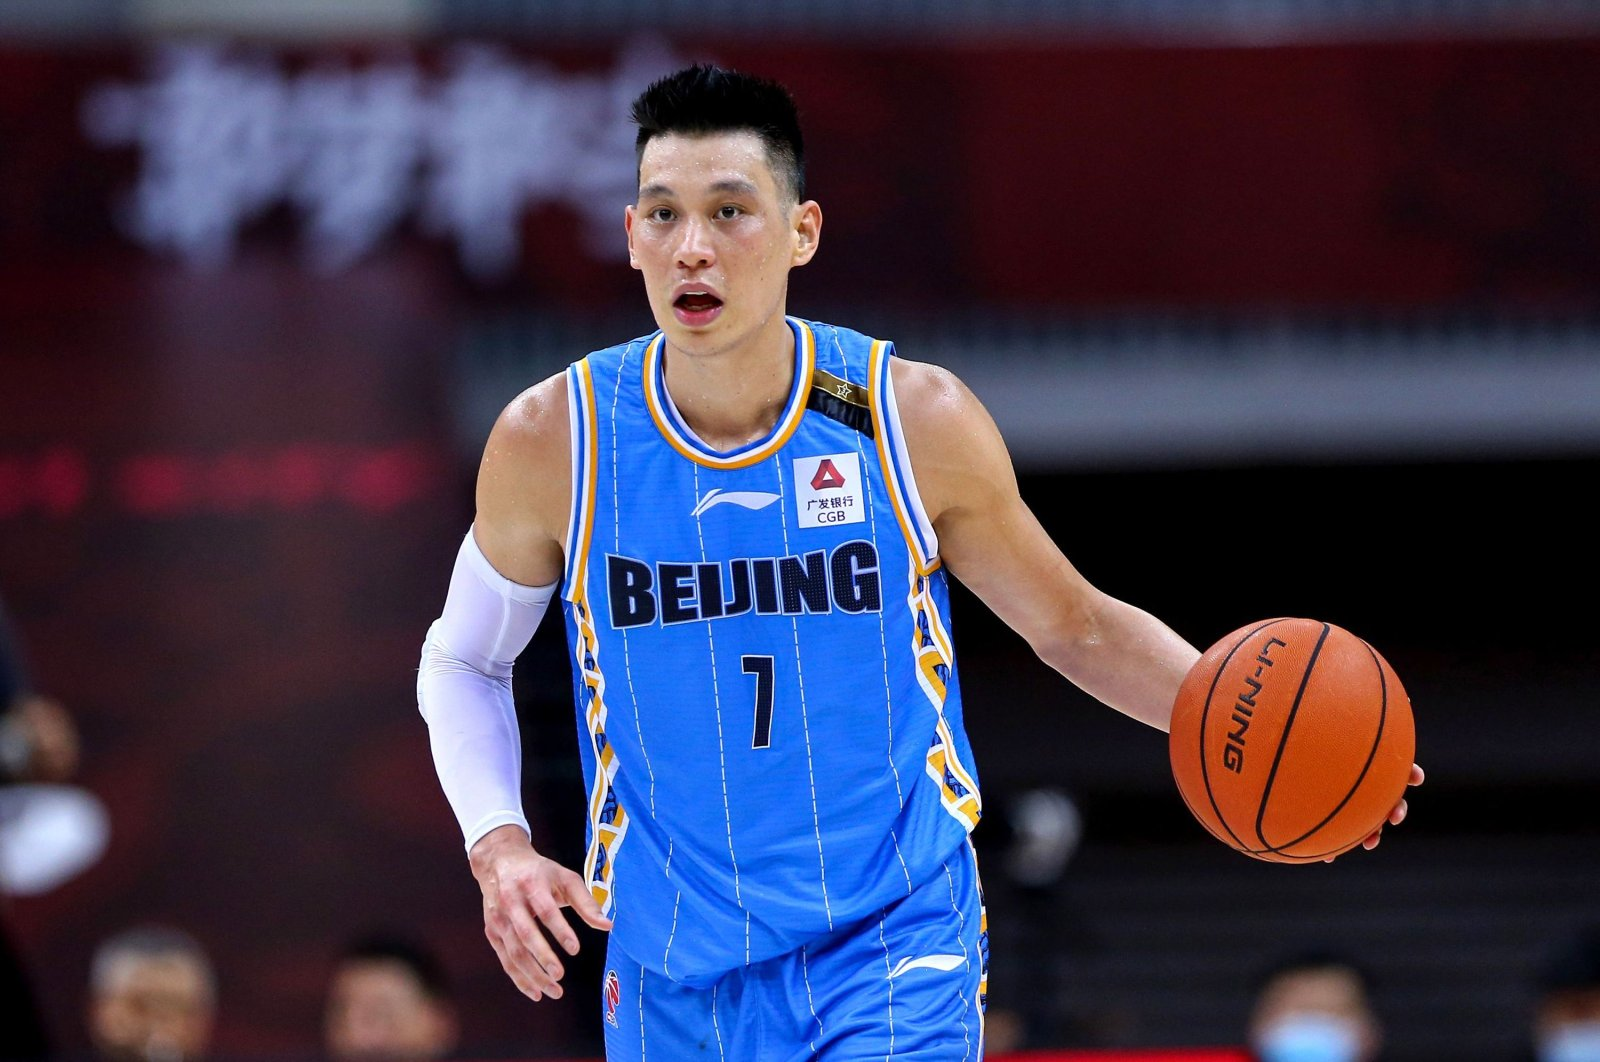 Beijing Ducks' Jeremy Lin driving the ball during a CBA match against Guangdong Southern Tigers in Qingdao, China, Aug. 4, 2020. (AFP Photo)